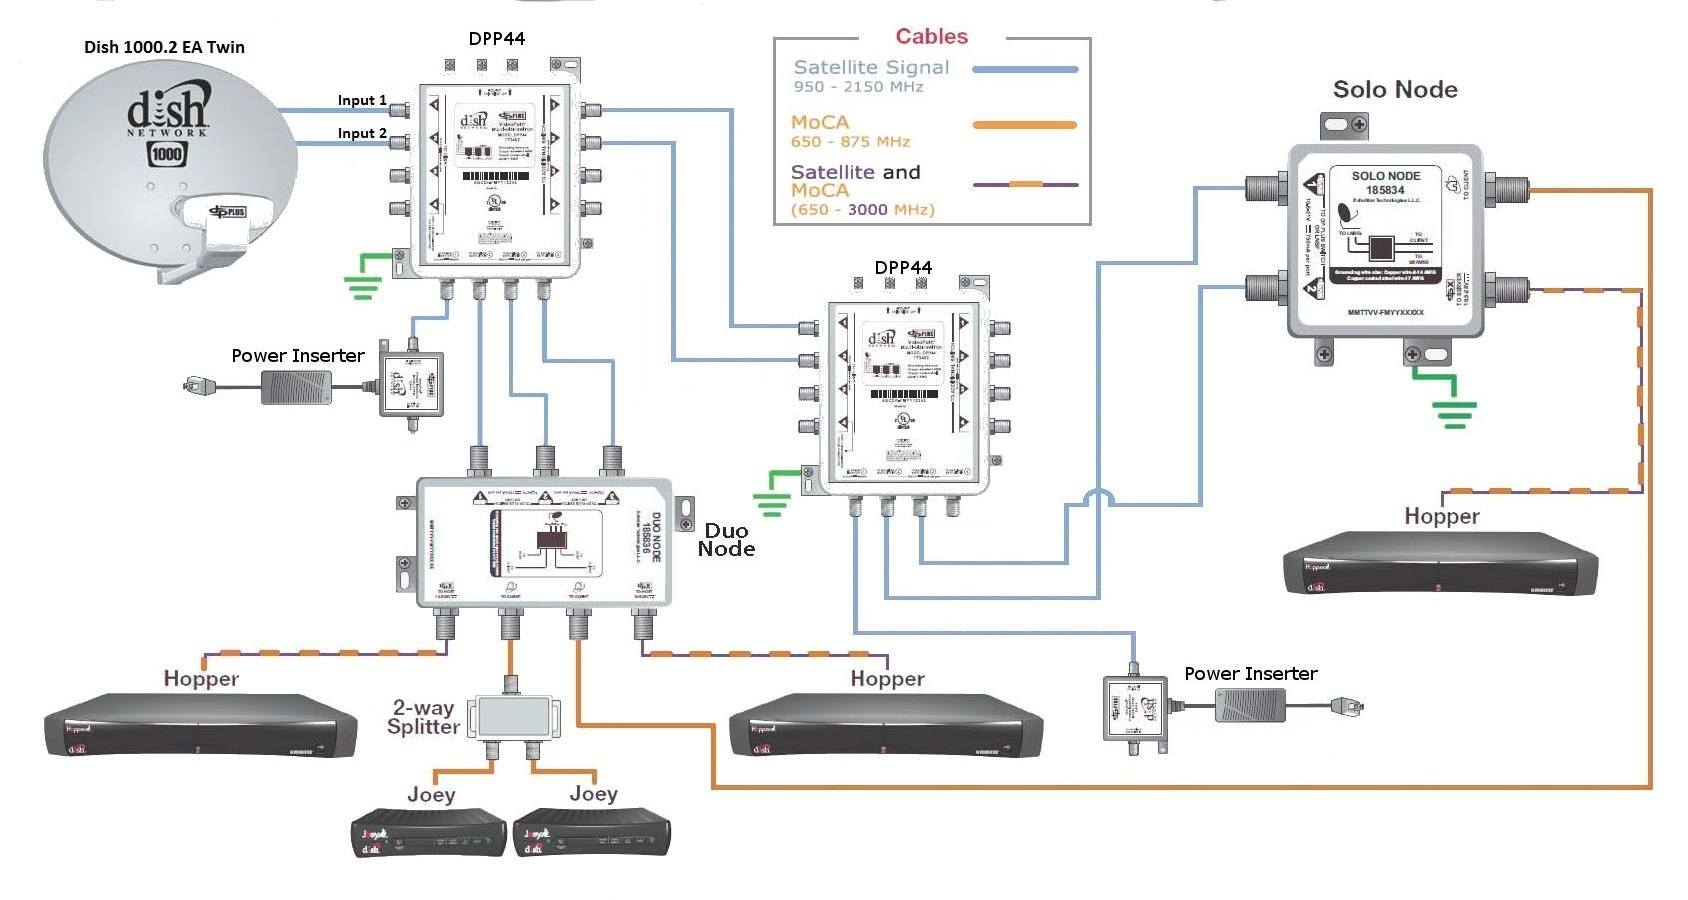 hopper wiring diagram dish network hopper installation \u2022 wiring  at readyjetset.co